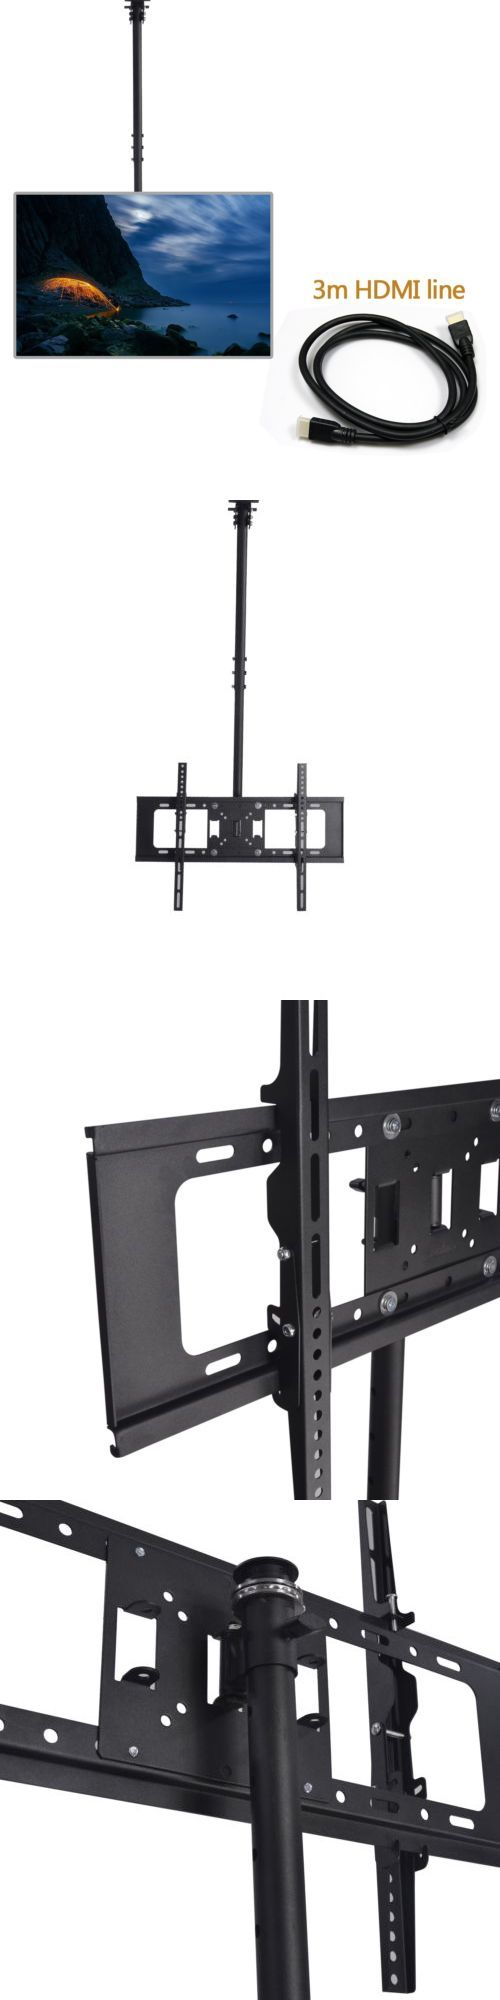 TV Mounts and Brackets: Ceiling Tilt+Swivel+Rotate Tv Mount Lcd Led 24 26 30 32 36 37 40 50 55 60 70Inch -> BUY IT NOW ONLY: $33.59 on eBay!